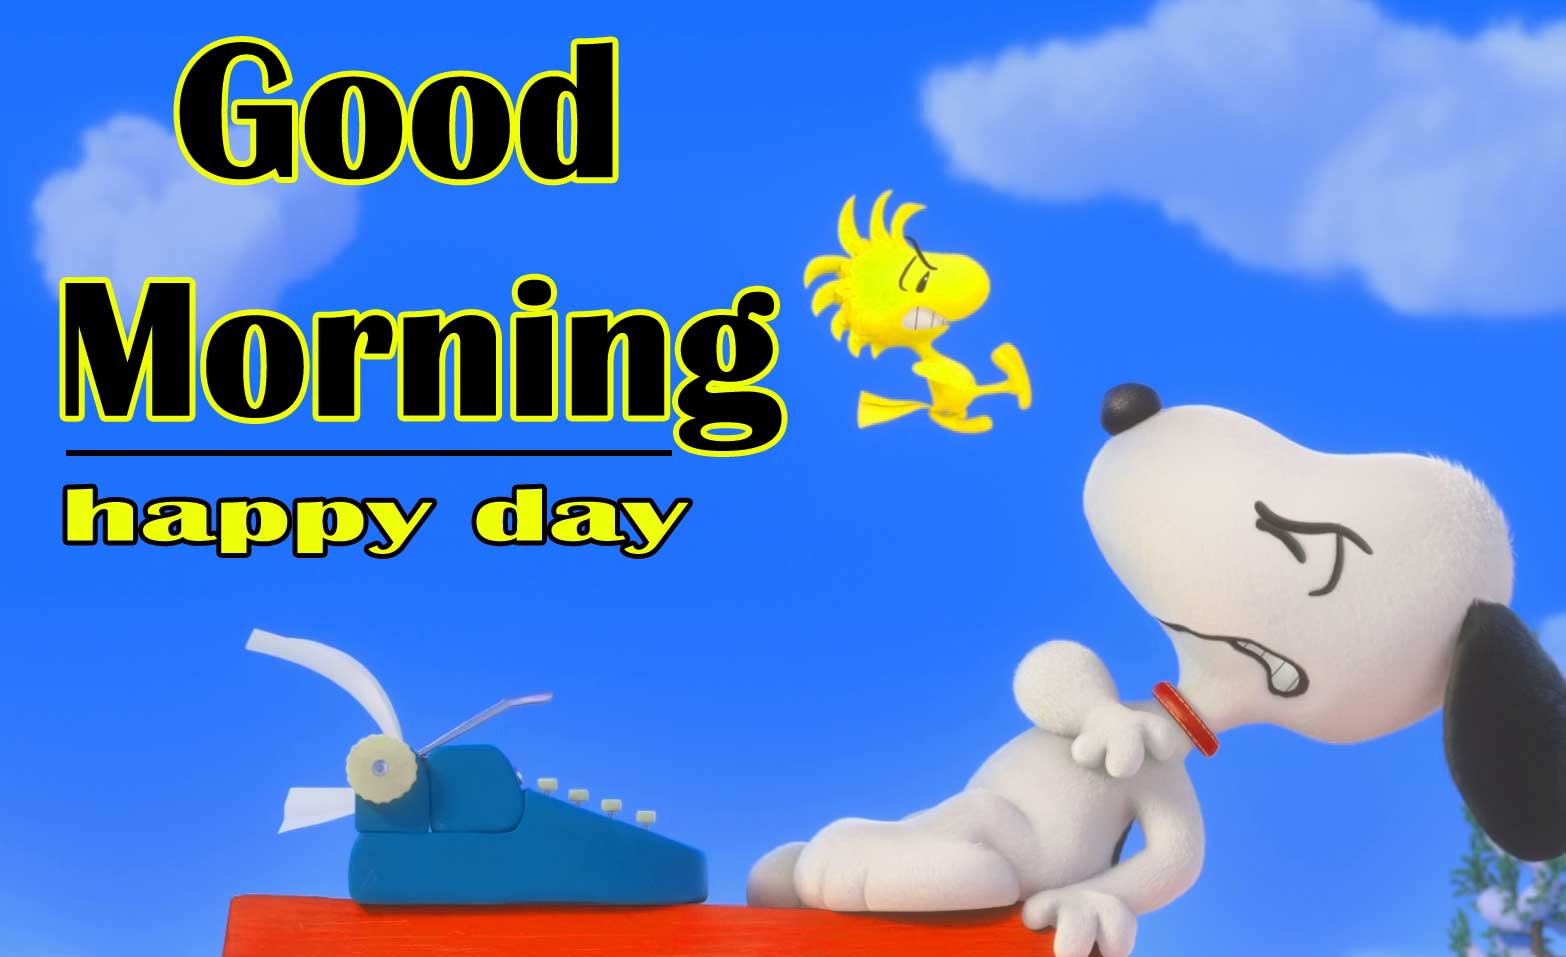 Snoopy good Morning 20